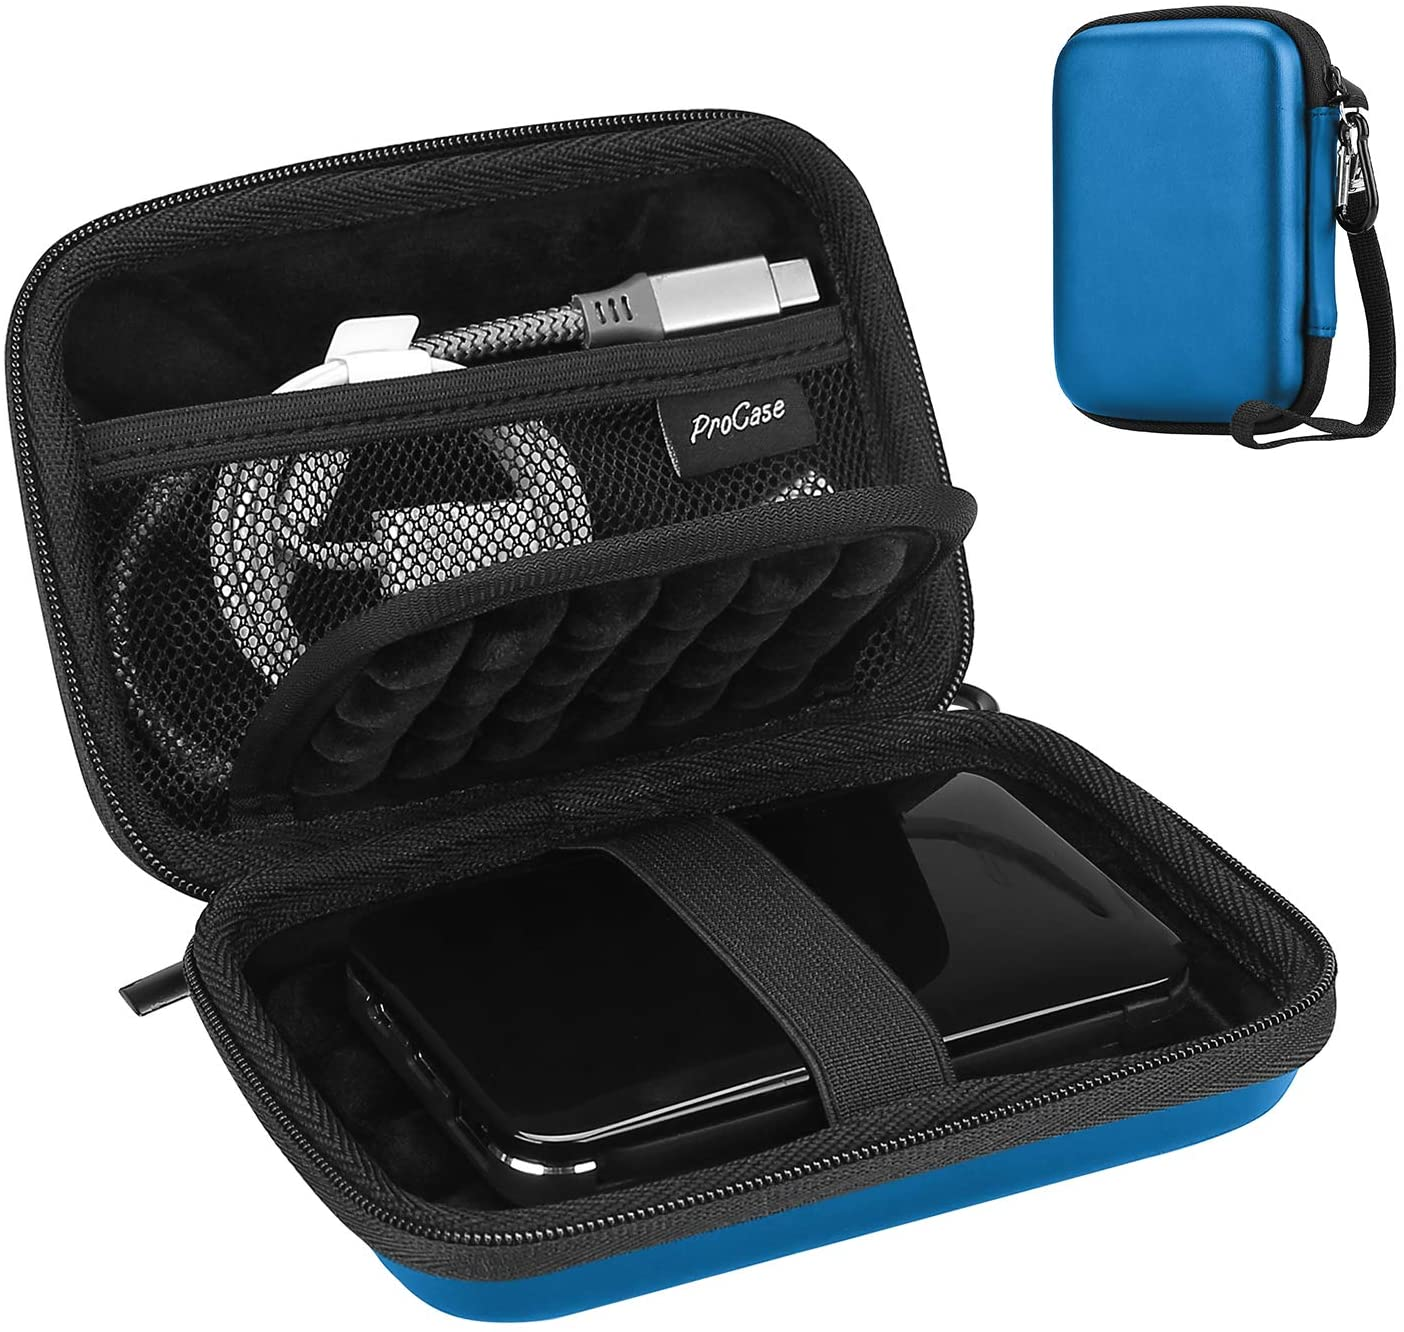 Travel Carrying Case for Canvio Western Seagate Hard Drive | ProCase